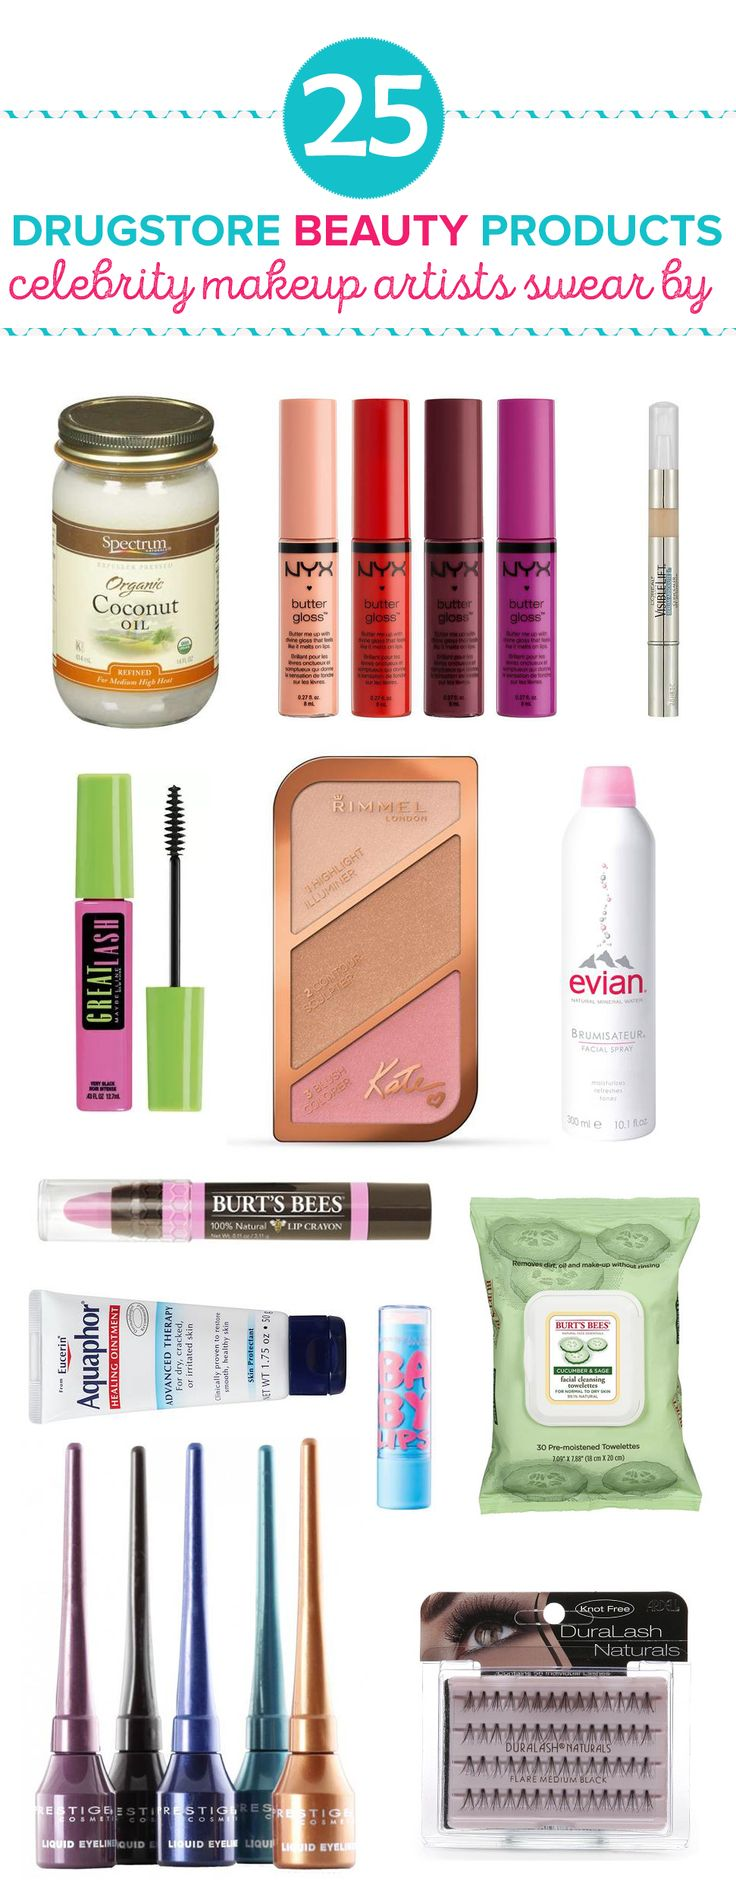 Drugstore Makeup Dupes: 25 Drugstore Beauty Buys Celebrity Makeup Artists Swear By